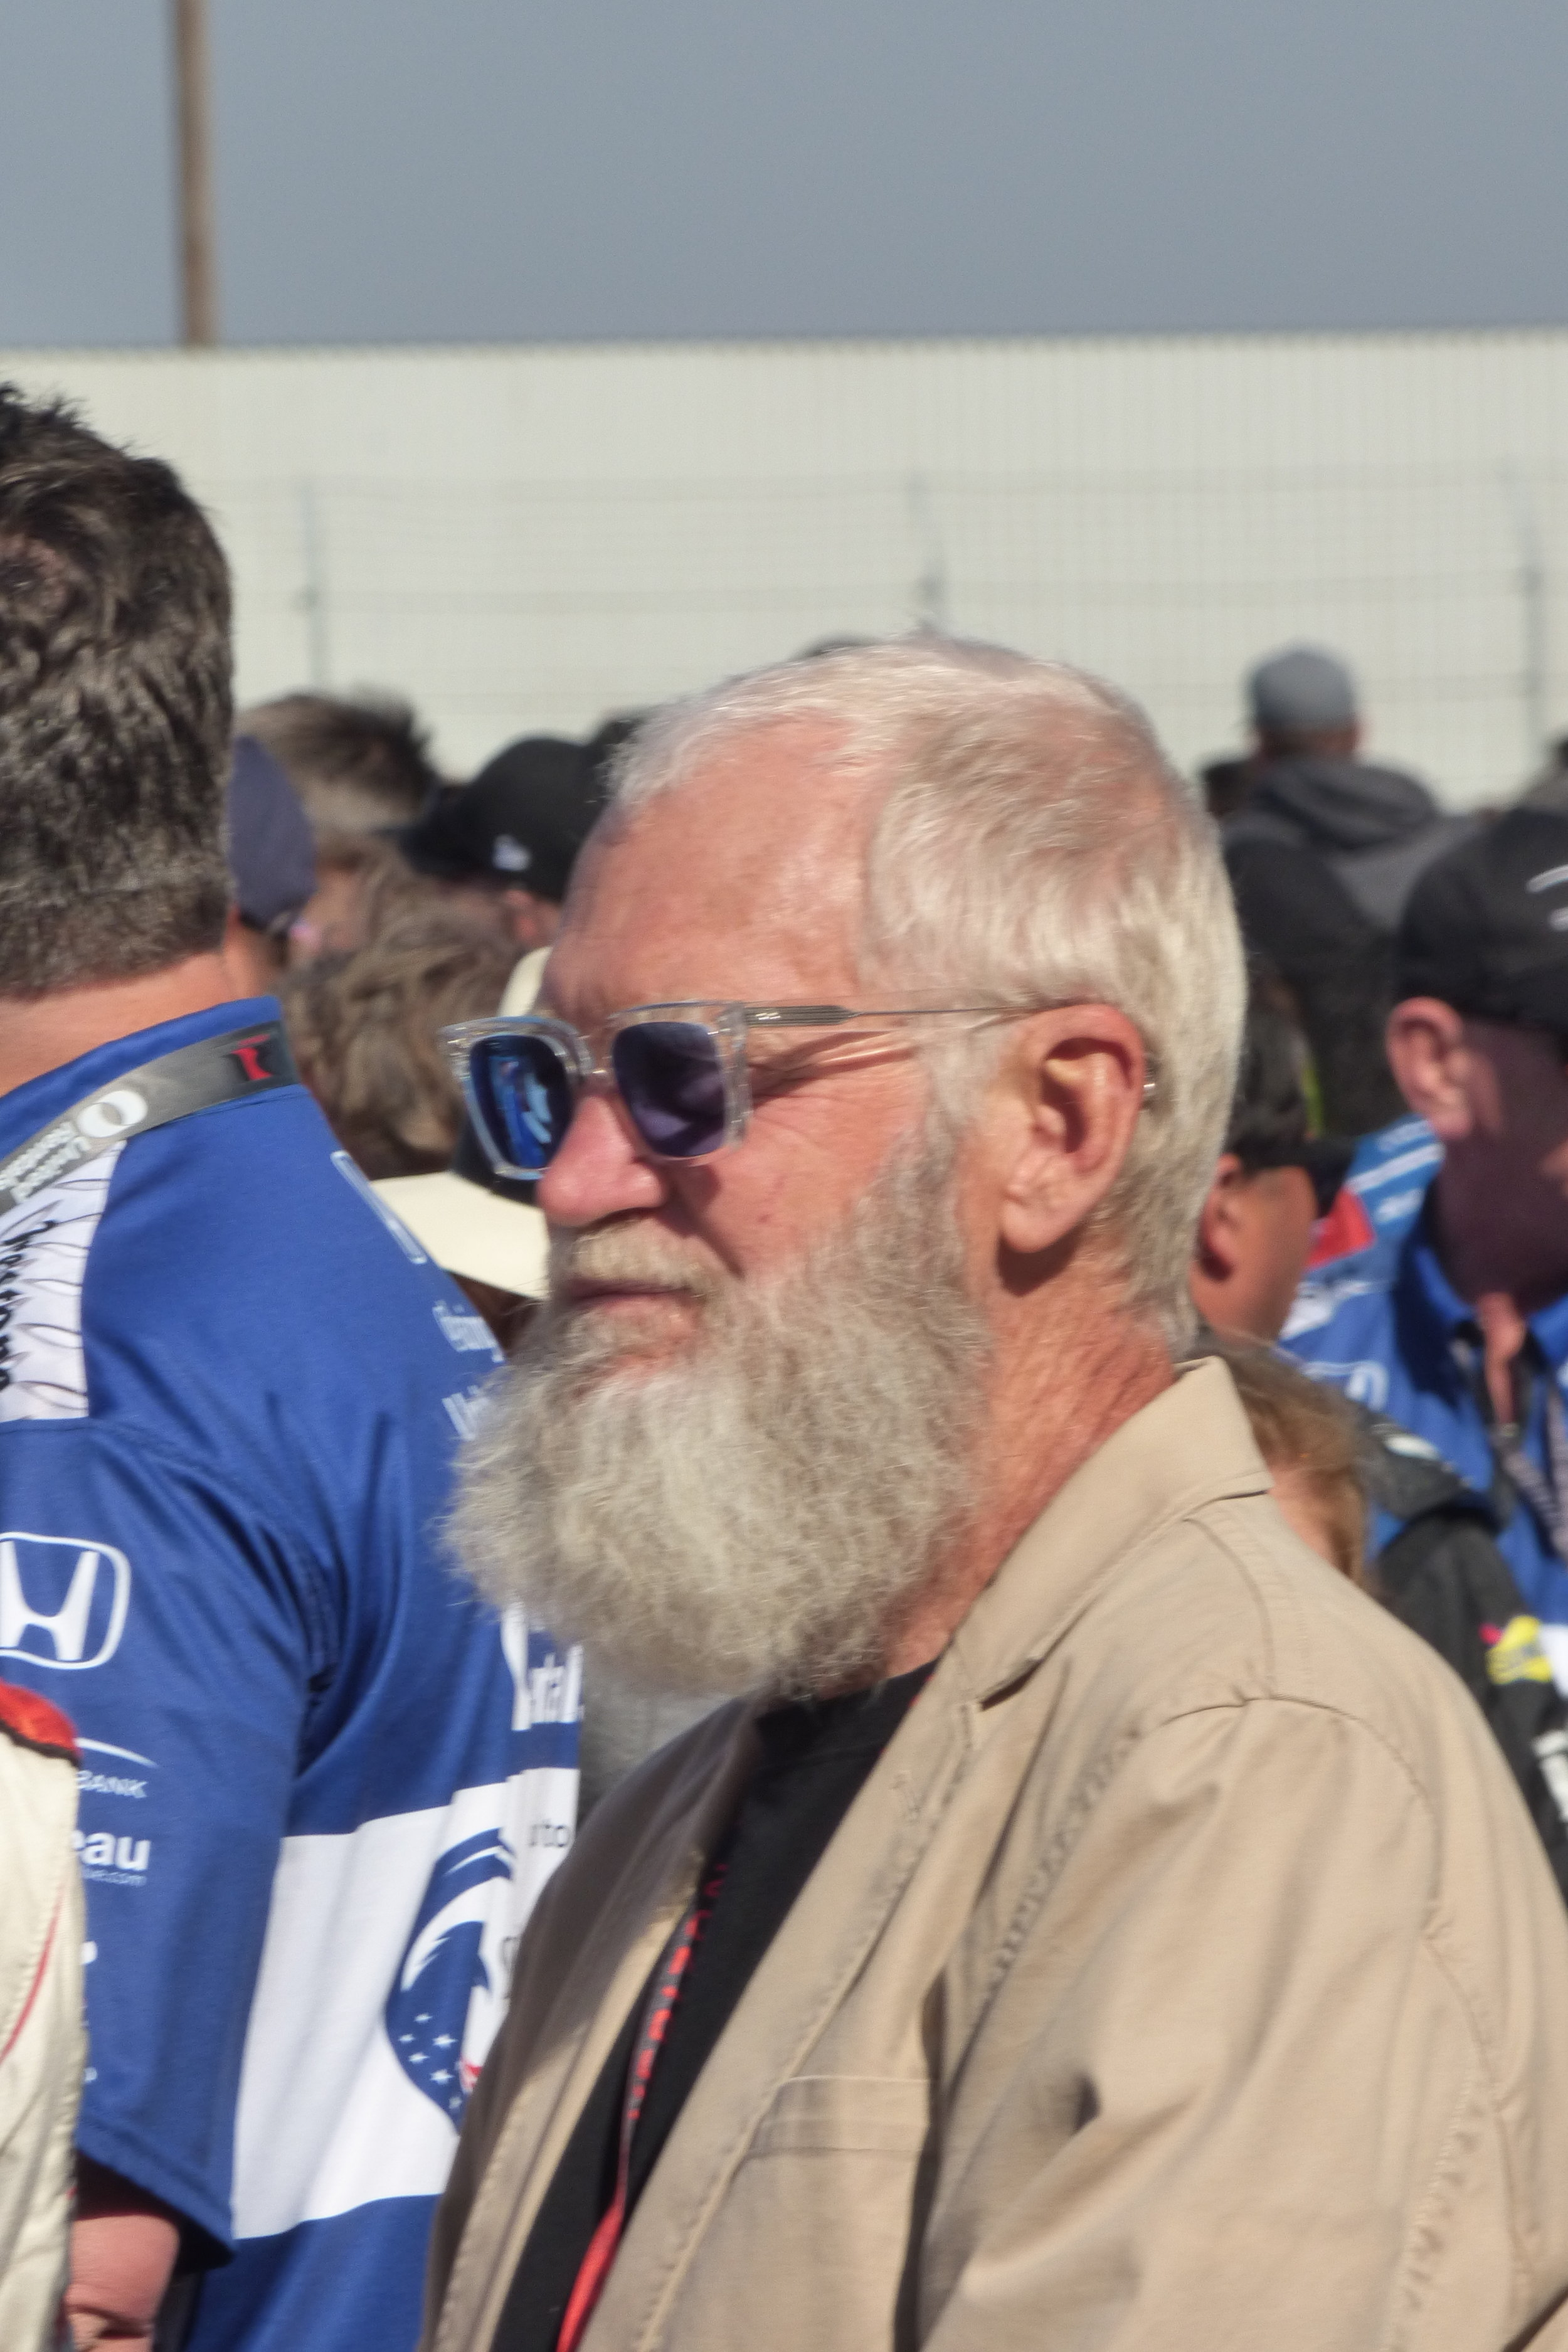 The King of Late Night and team owner David Letterman